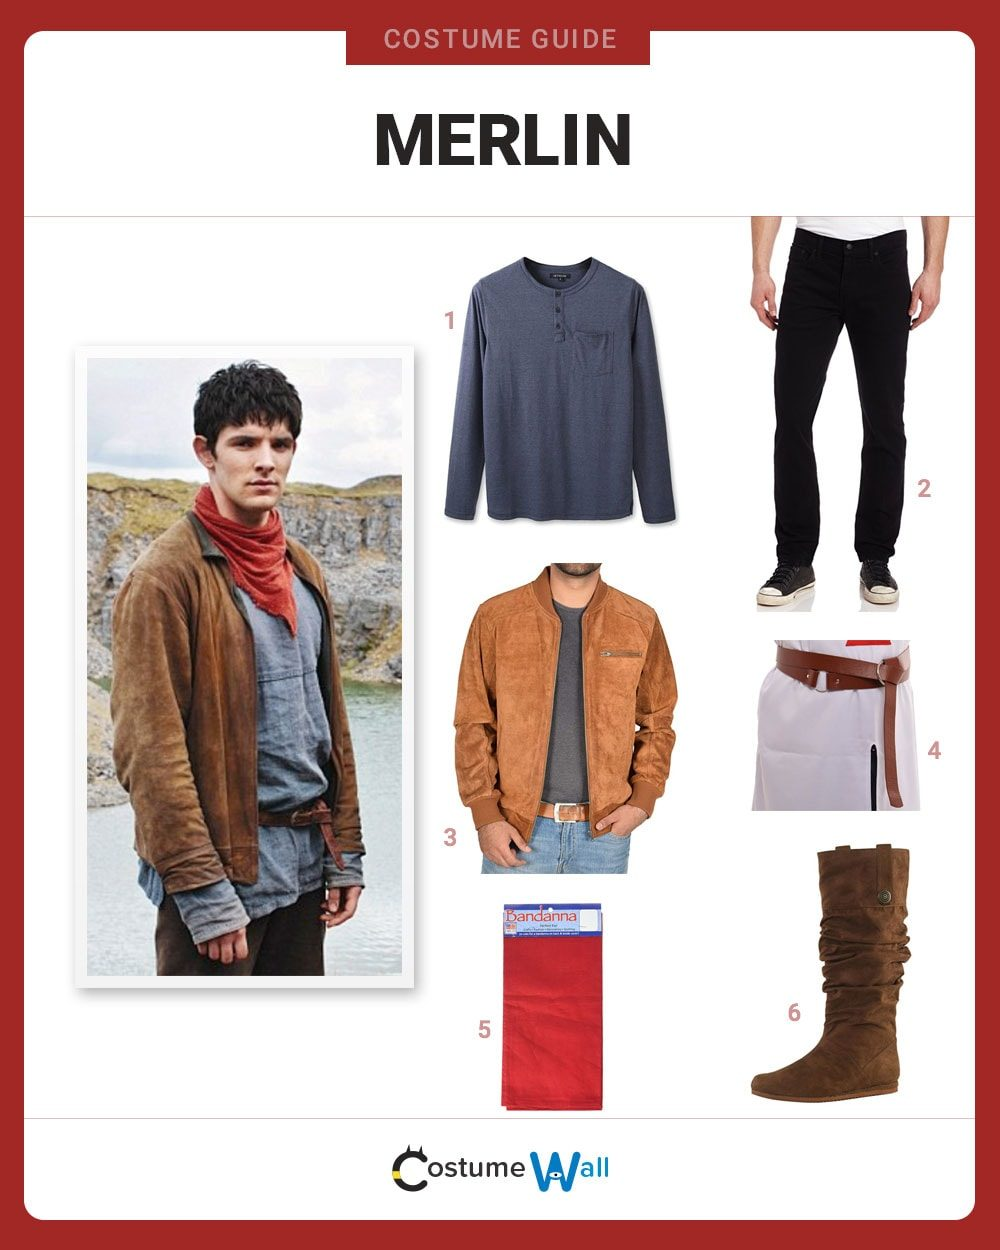 Merlin Costume Guide